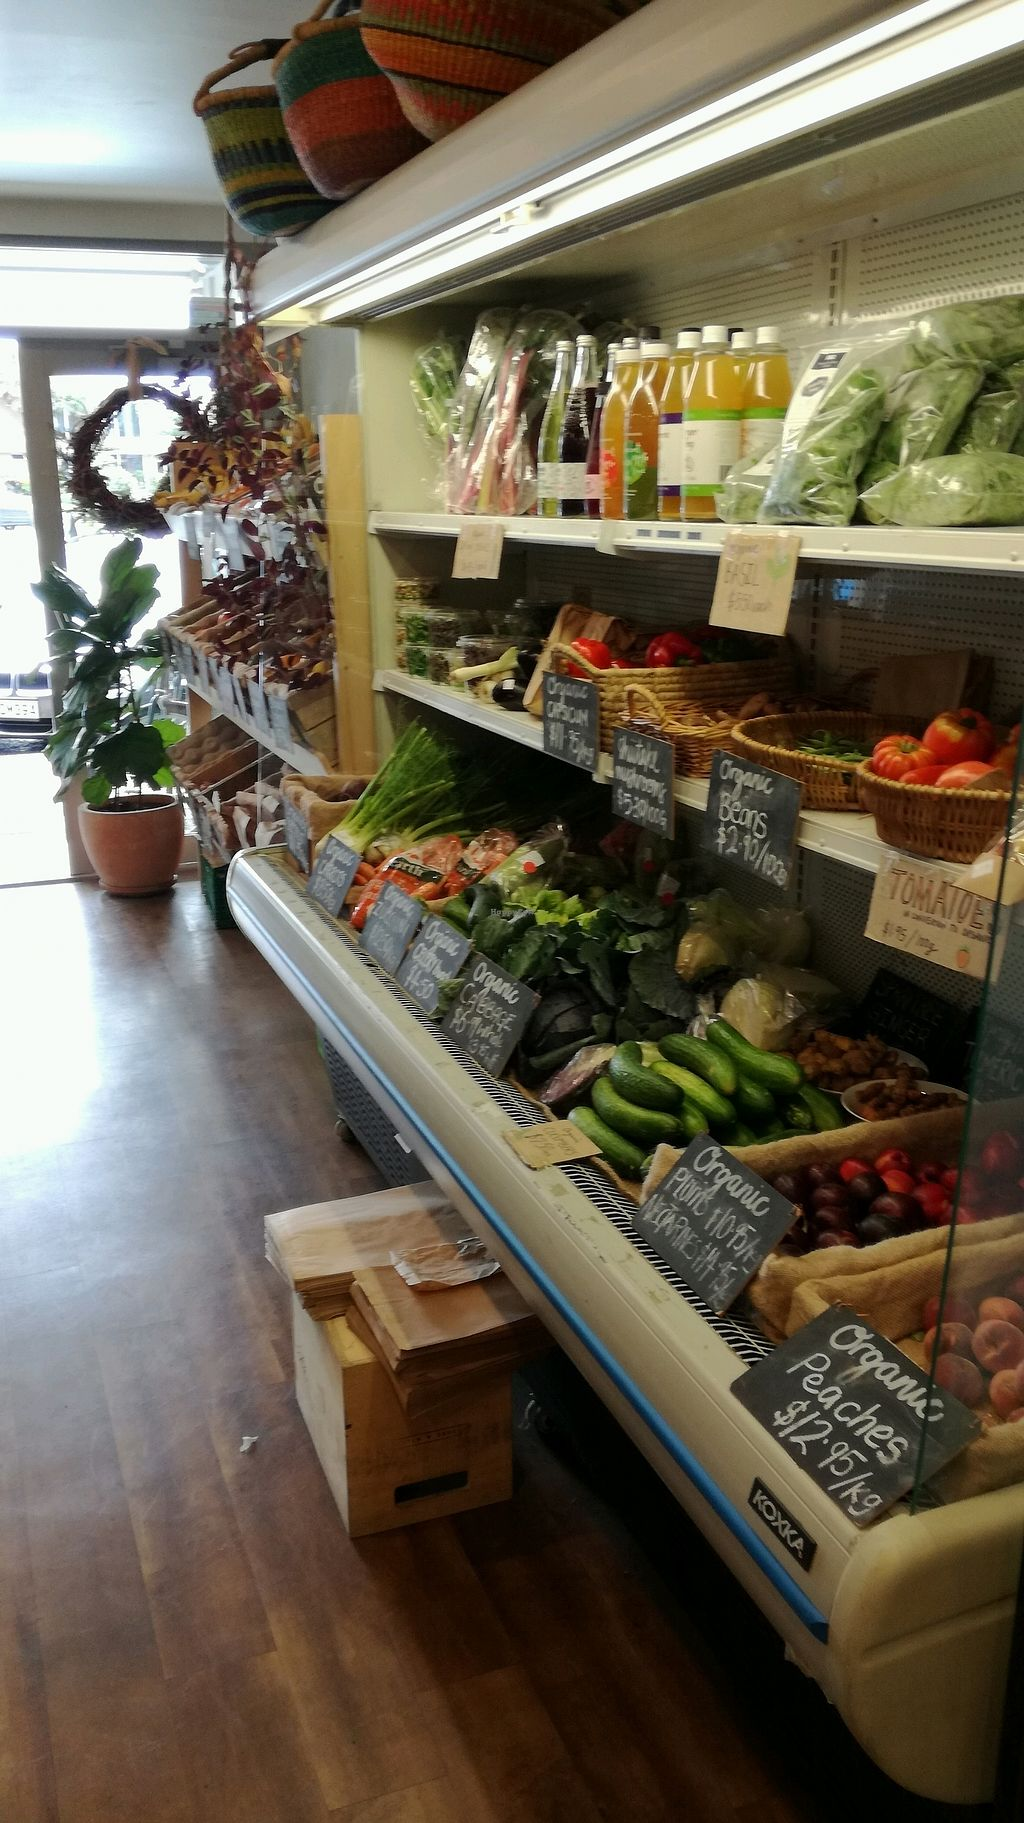 """Photo of Be Organics  by <a href=""""/members/profile/evajelen"""">evajelen</a> <br/>fresh organic veggies and fruit <br/> January 24, 2018  - <a href='/contact/abuse/image/109841/350247'>Report</a>"""